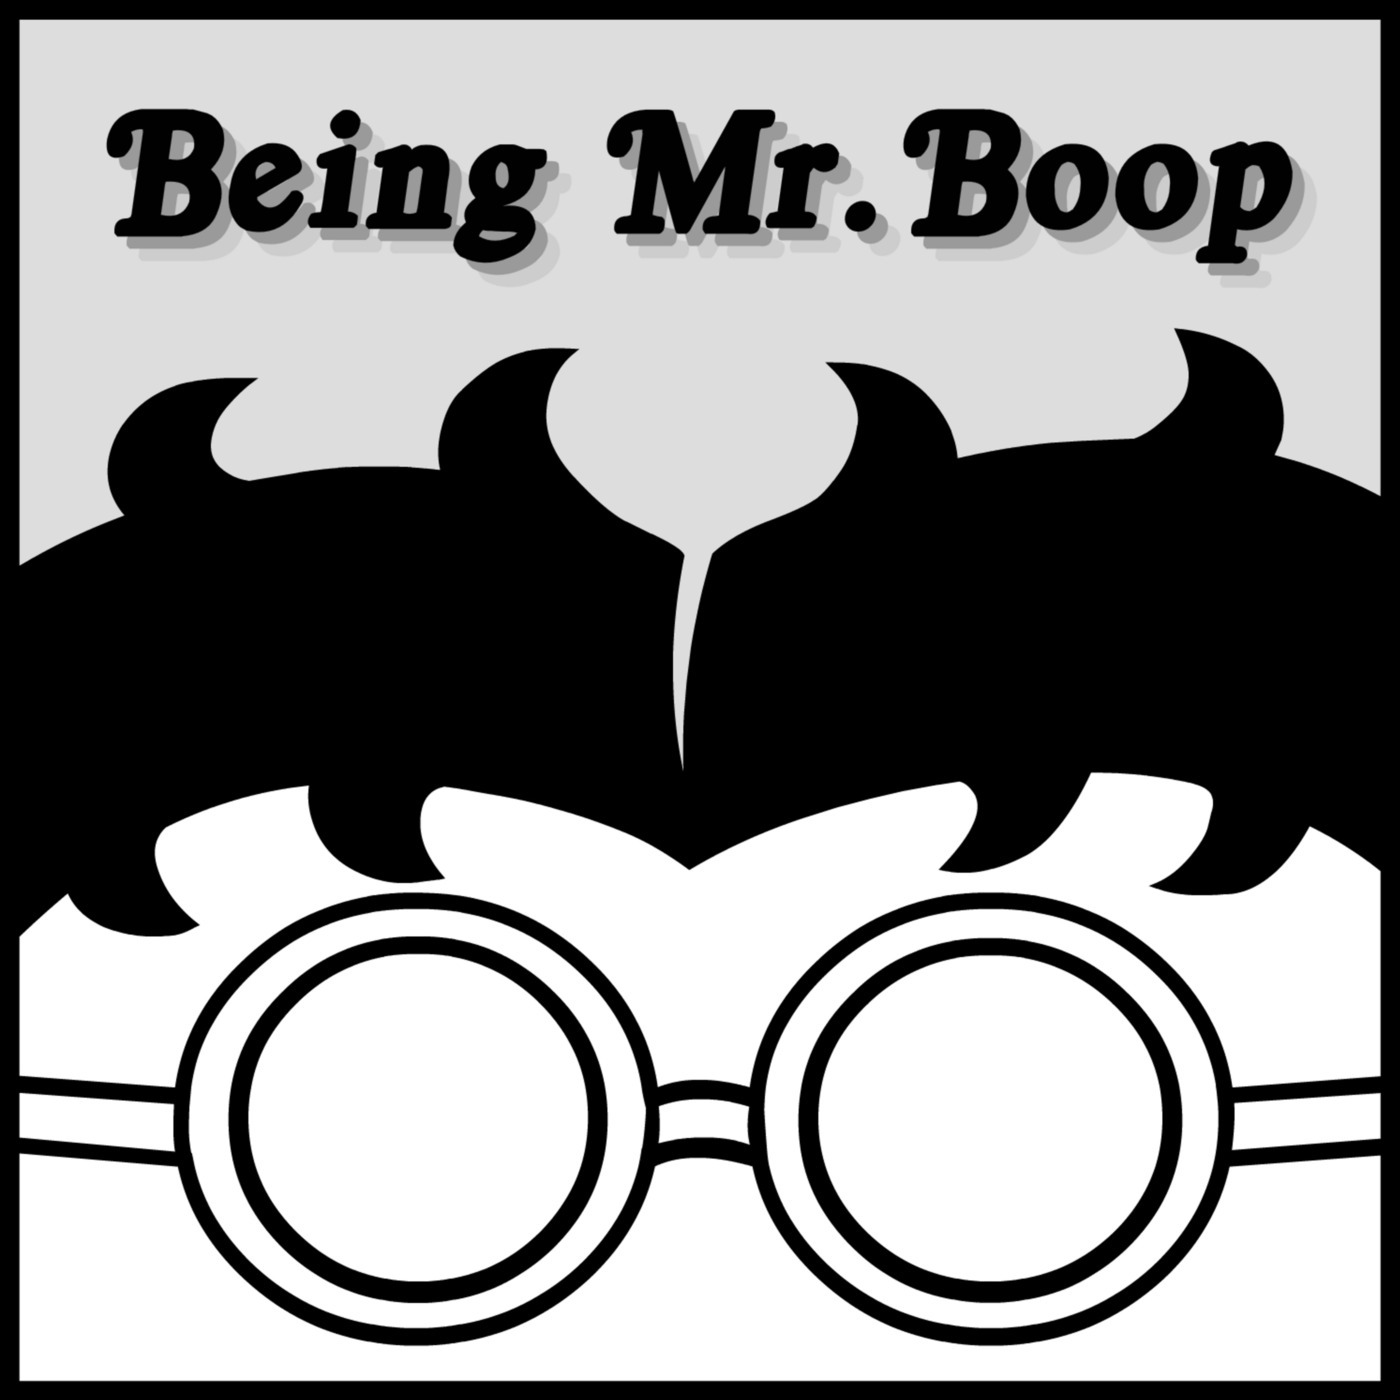 Being Mr. Boop: Episode 43 - Tuesday, March 31, 2020